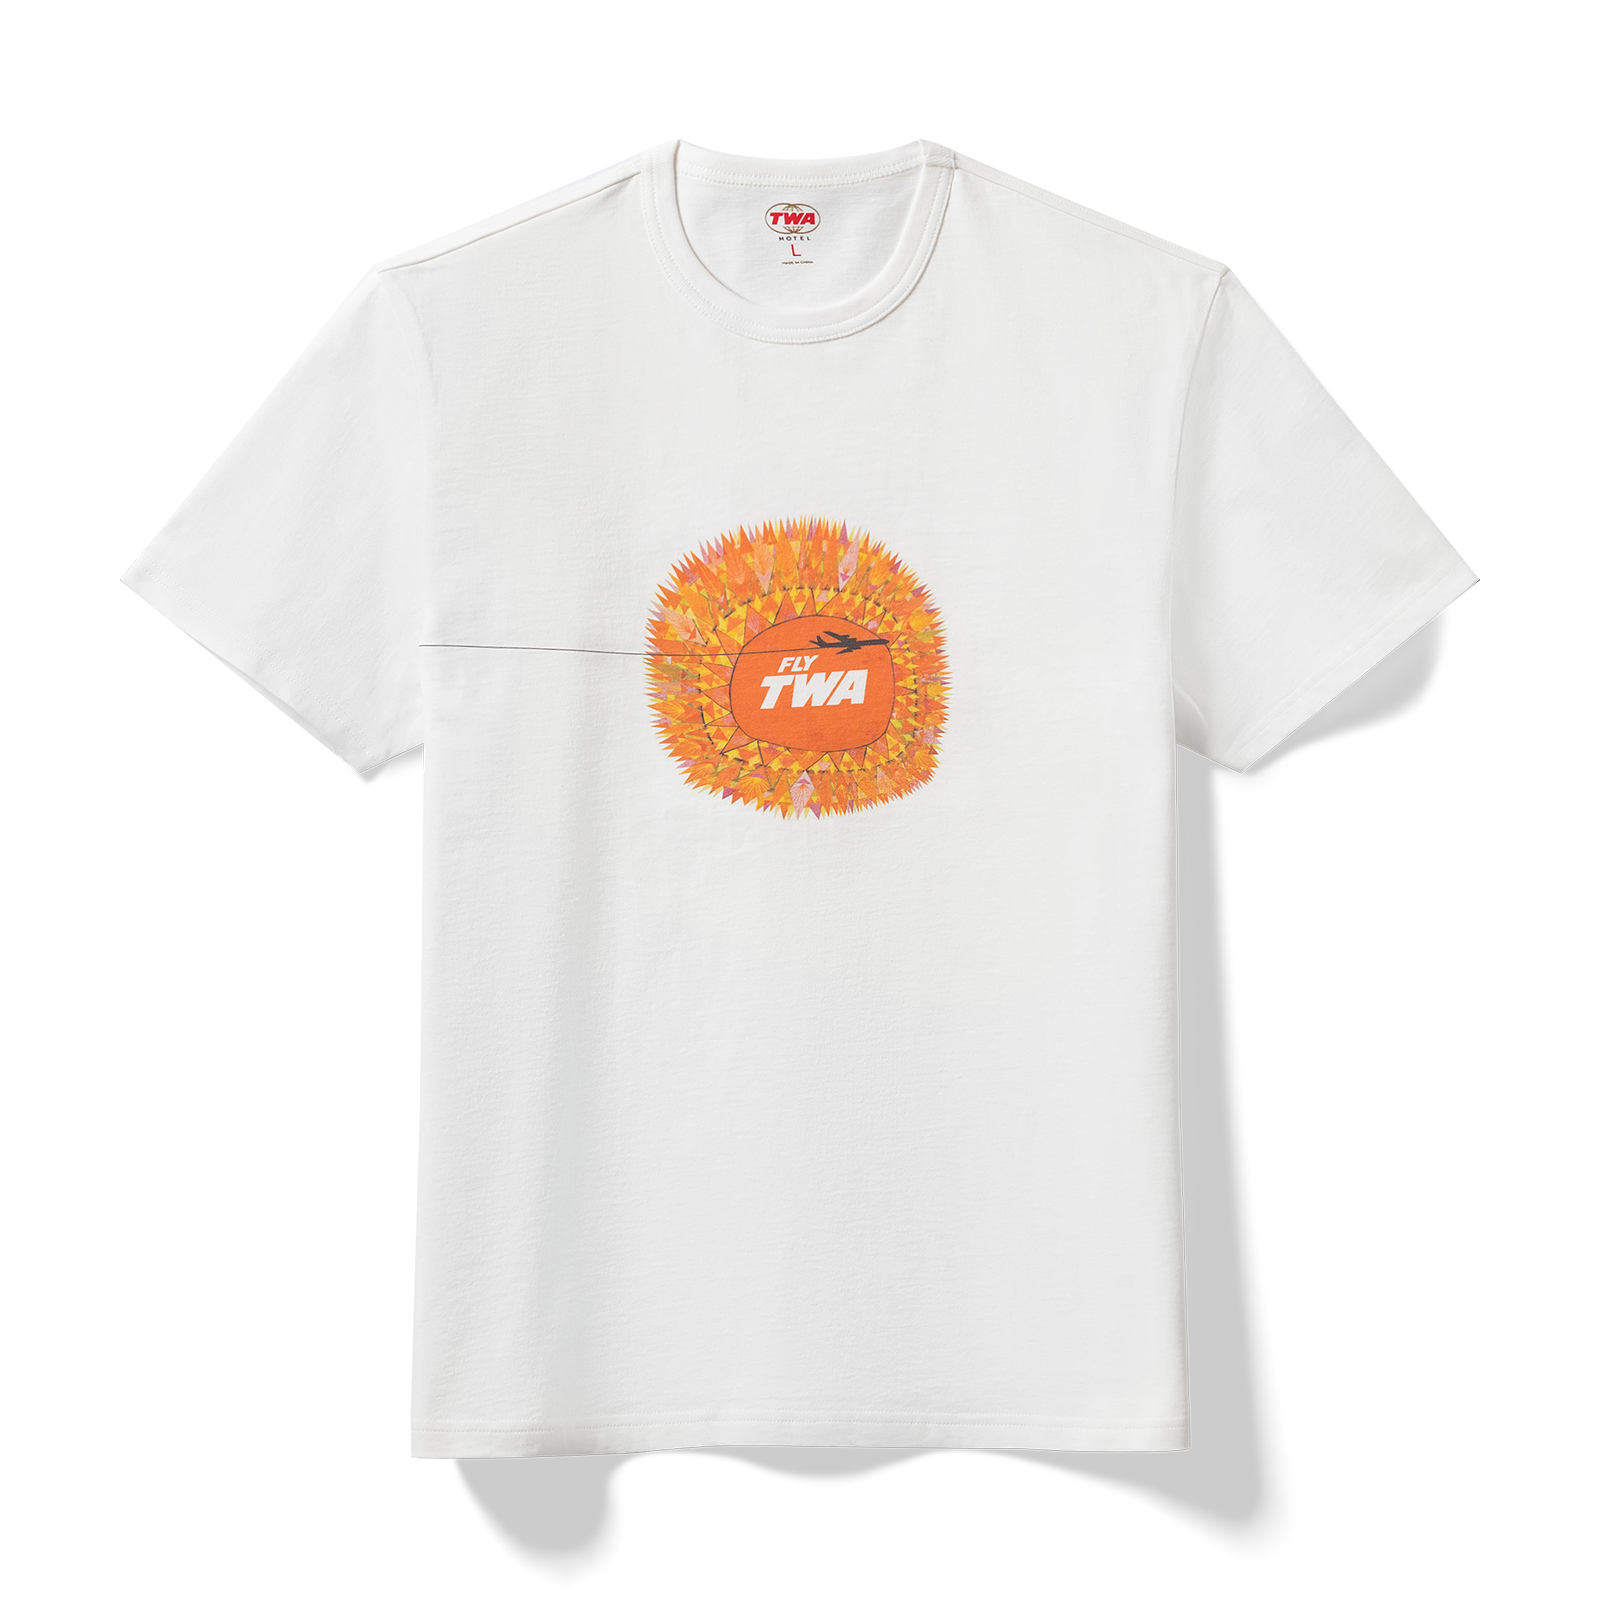 Pinned t-shirt product photography